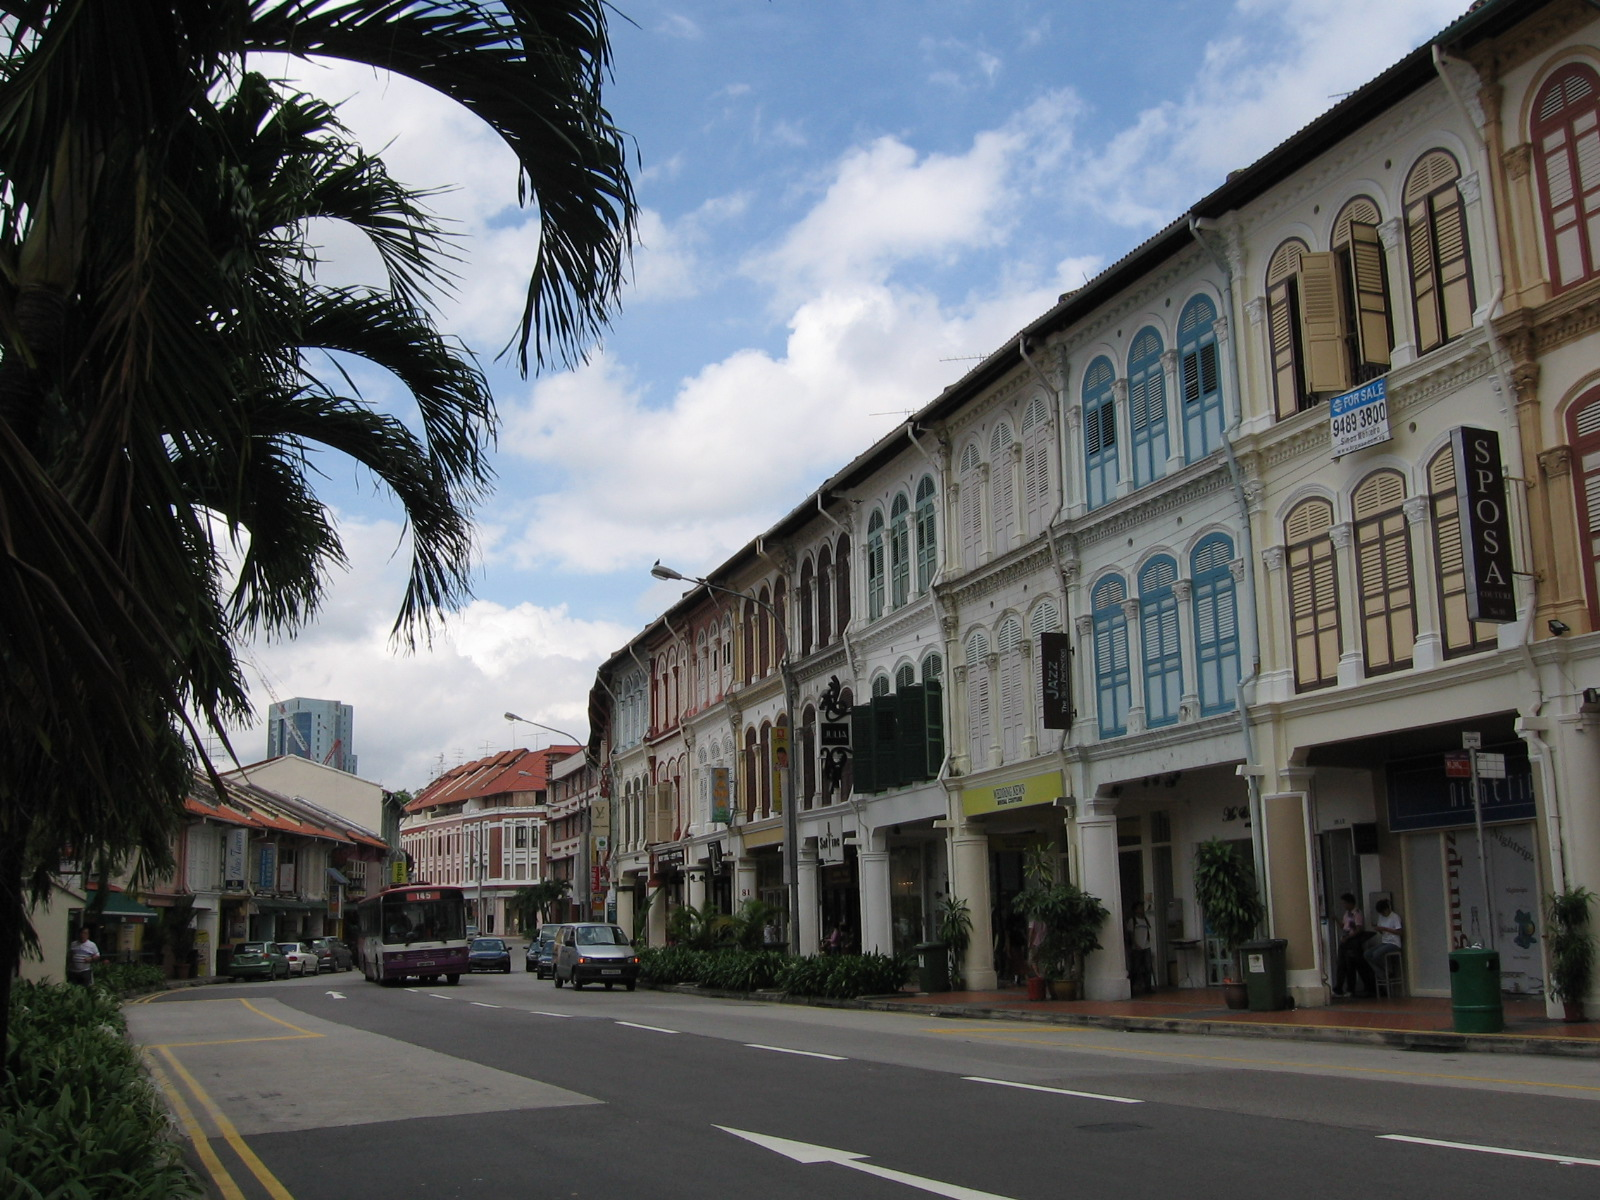 Tanjong Pagar Singapore Map,Map of Tanjong Pagar Singapore,Tourist Attractions in Singapore,Things to do in Singapore,Tanjong Pagar Singapore accommodation destinations attractions hotels map reviews photos pictures